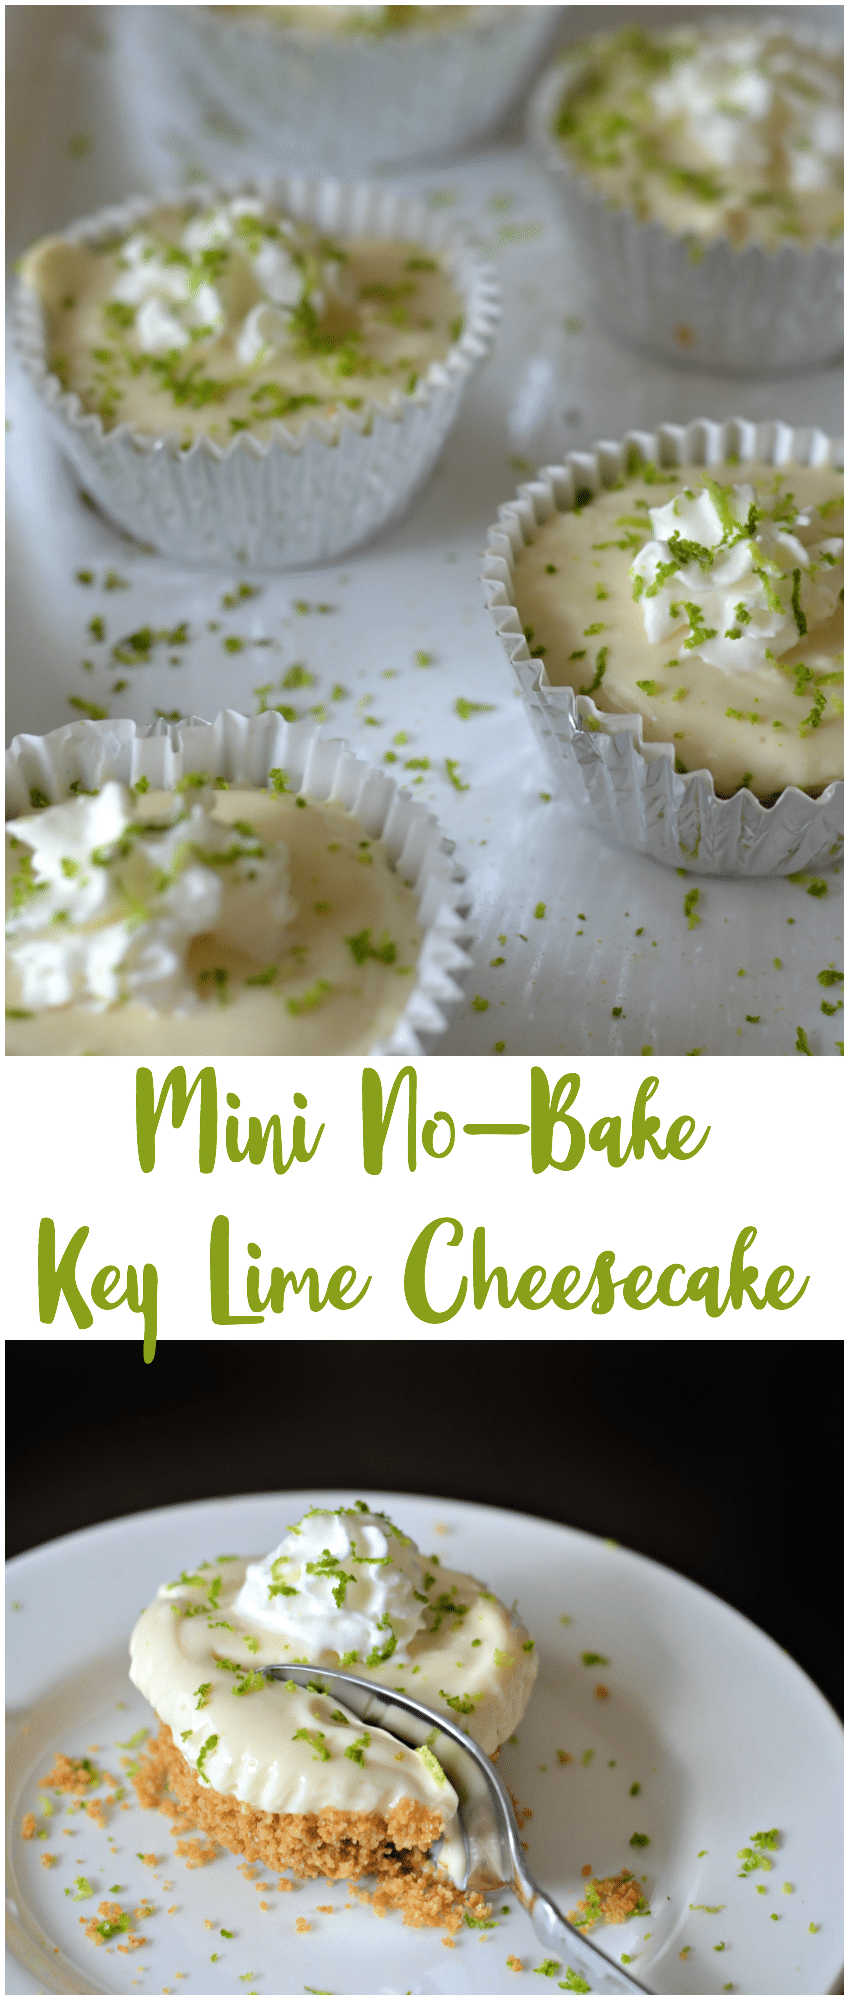 Mini No-Bake Key Lime Cheesecakes